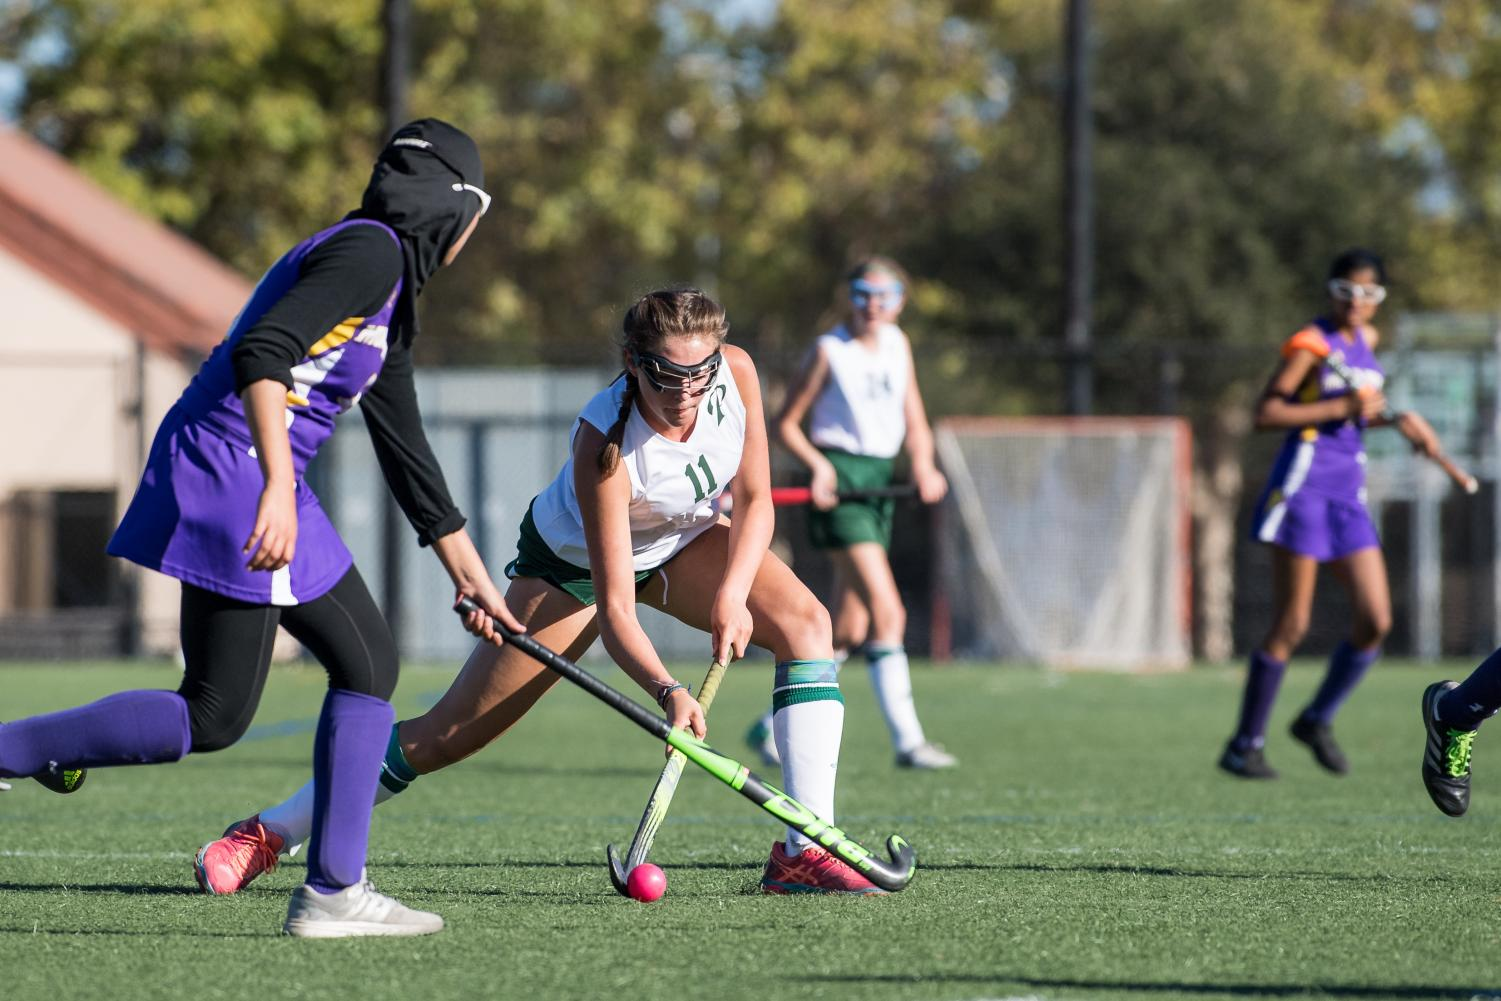 Alexa Gwyn ('21) drives to the goal, helping Paly beat Monta Vista in their first game 1-0